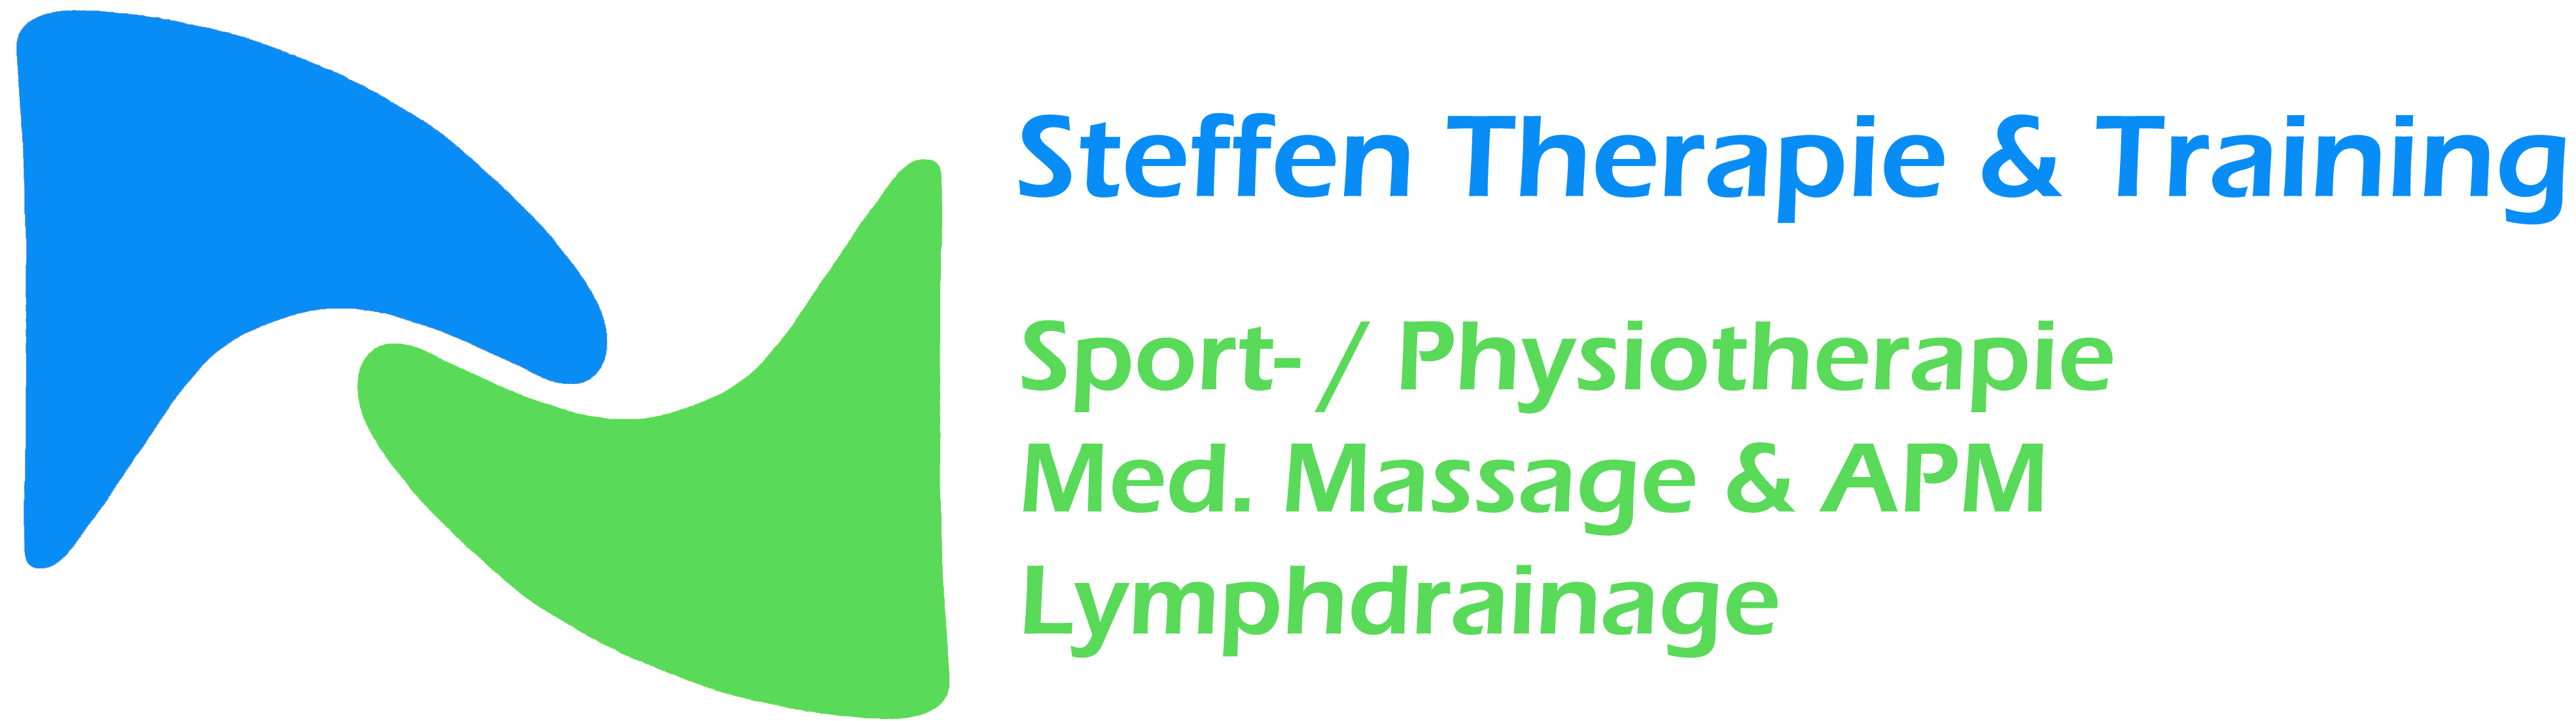 steffen therapie & training